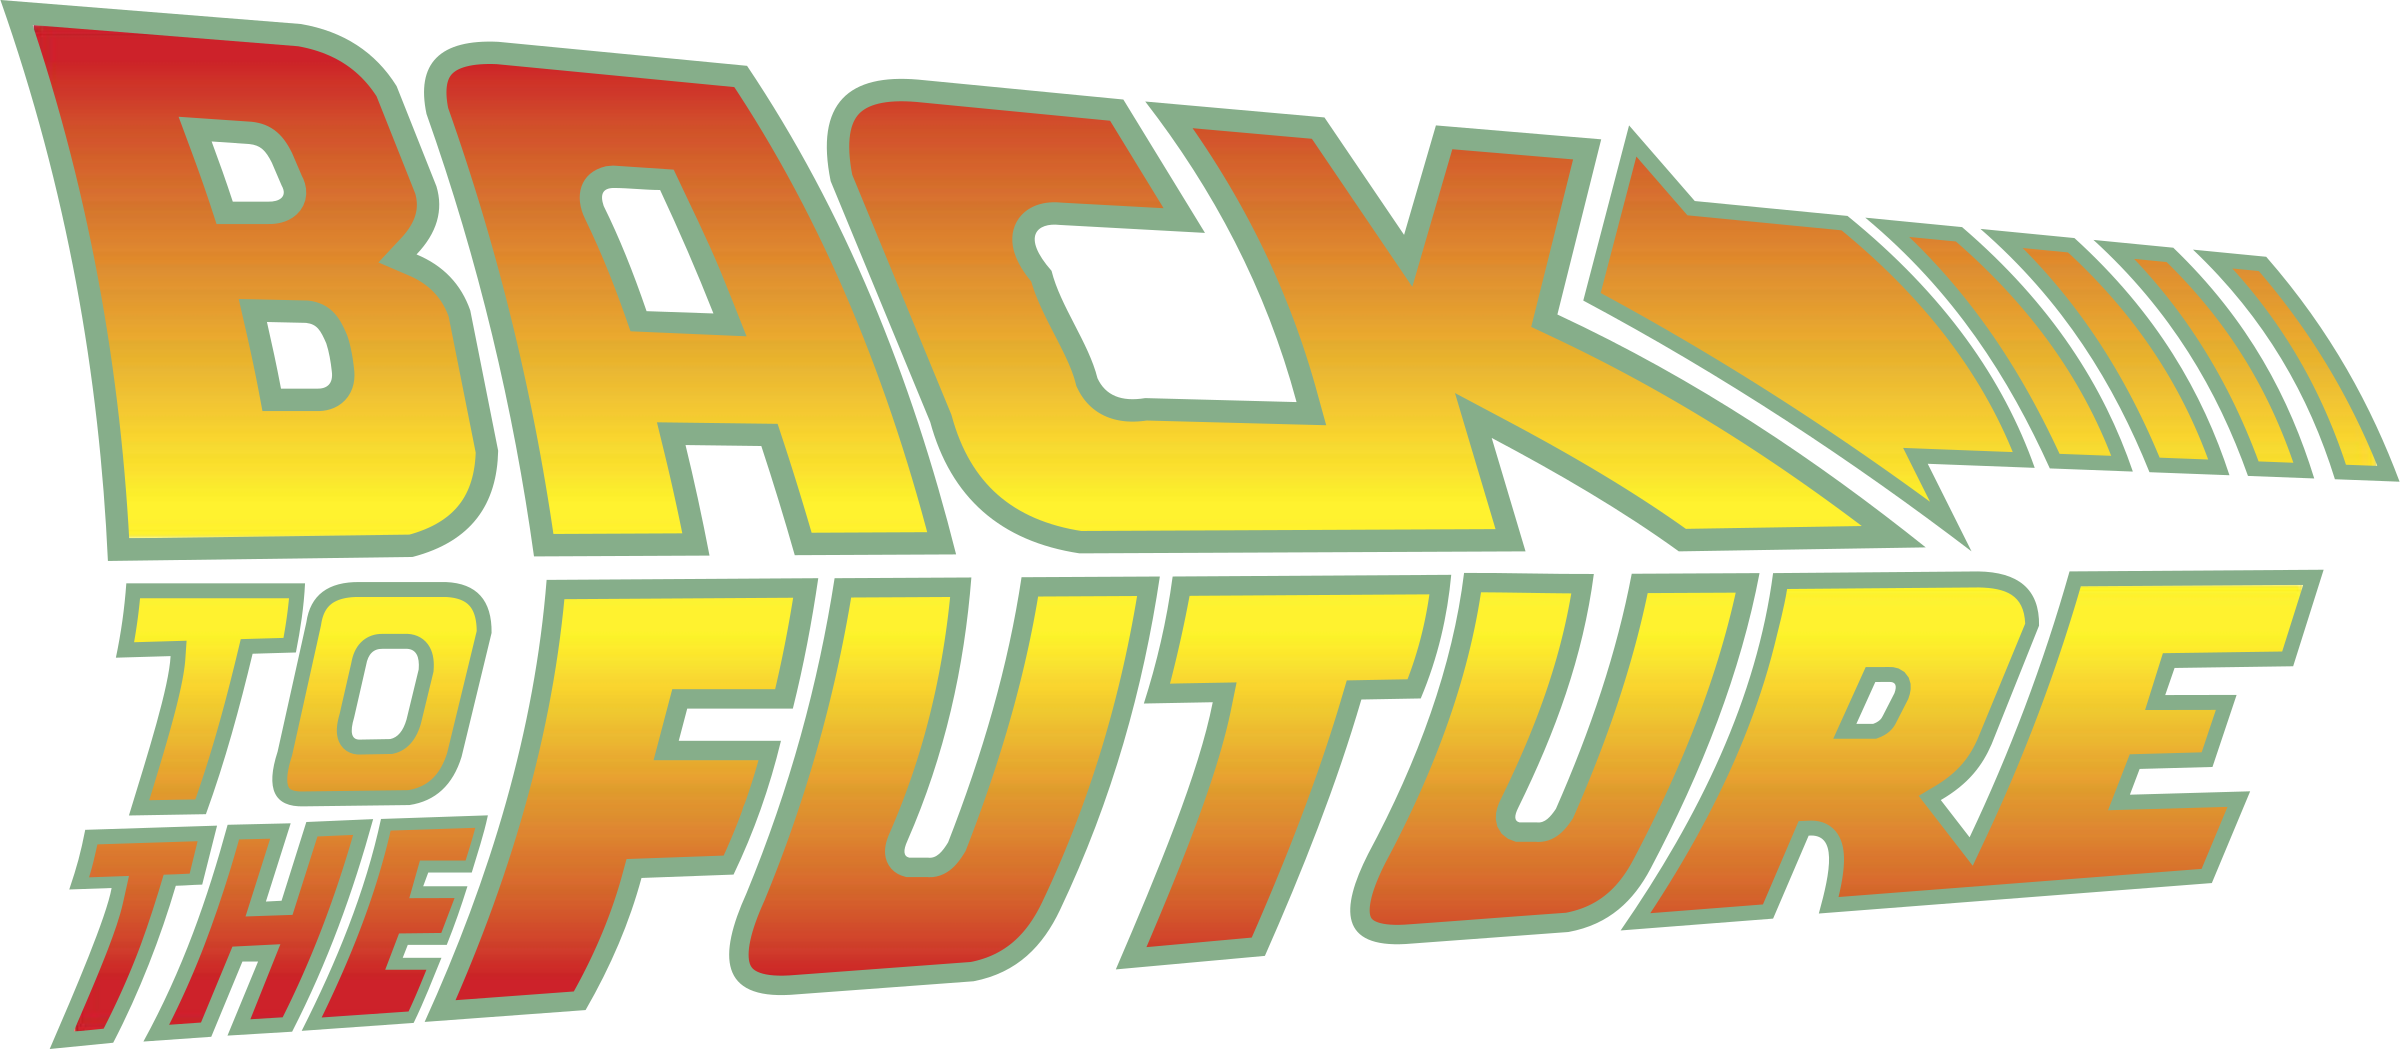 Back To The Future Logo Png Transparent With No Background Future Logo Back To The Future Logos